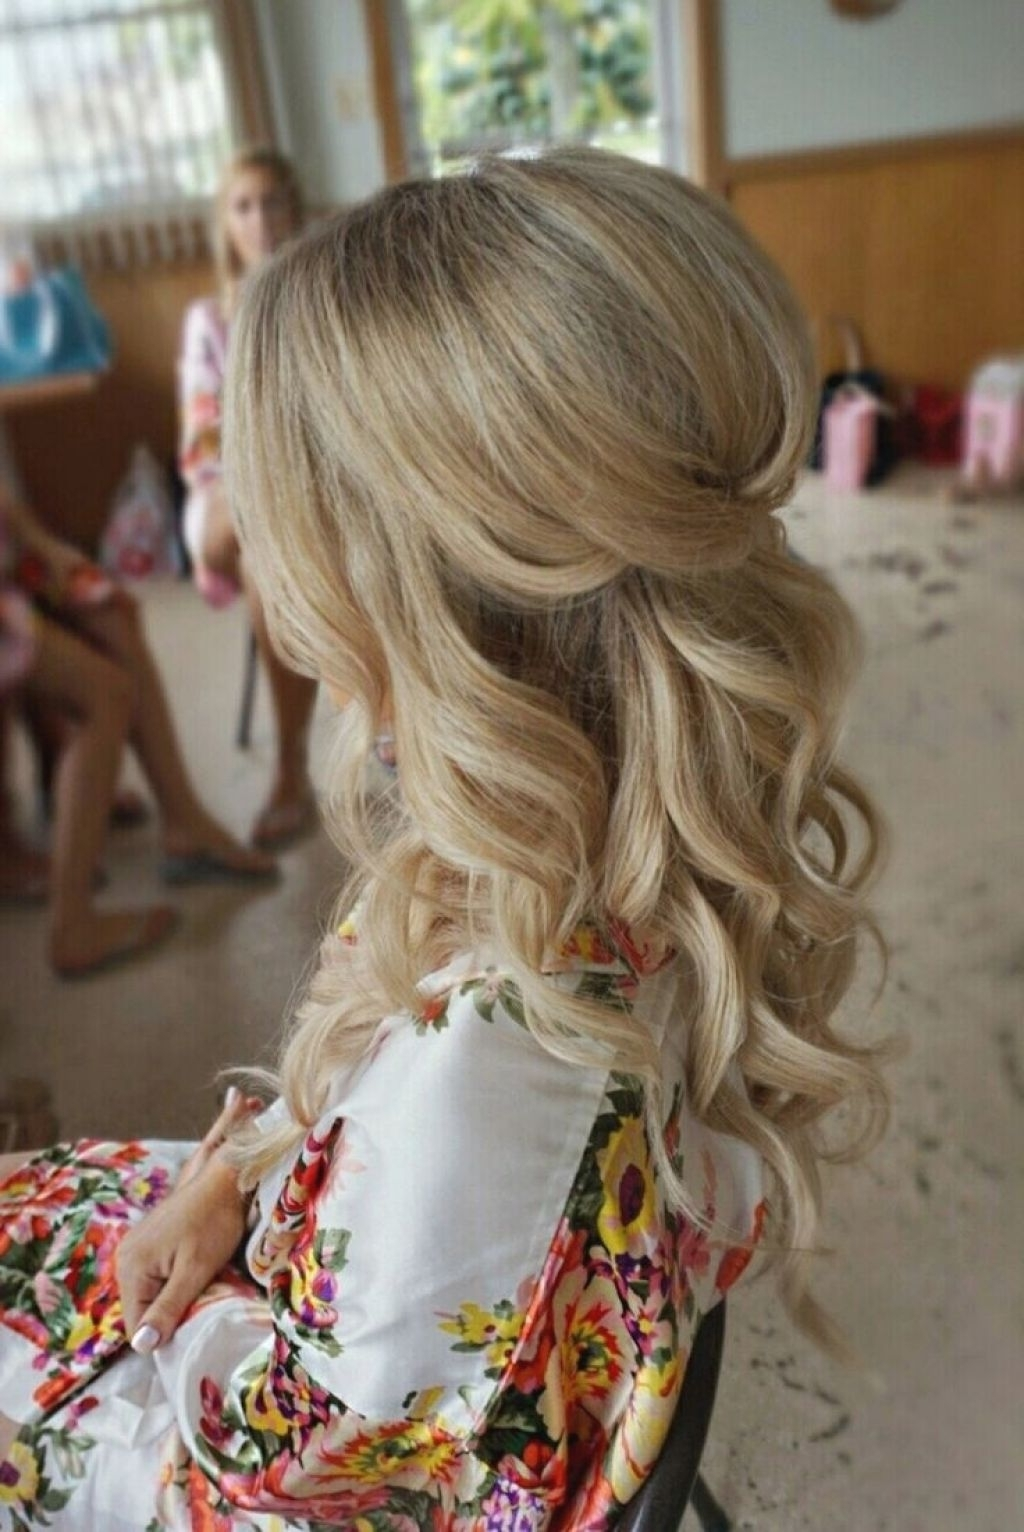 √ 24+ Awesome Wedding Hairstyles For Bridesmaids: Wedding Within Favorite Wedding Hairstyles For Bridesmaid (View 5 of 15)